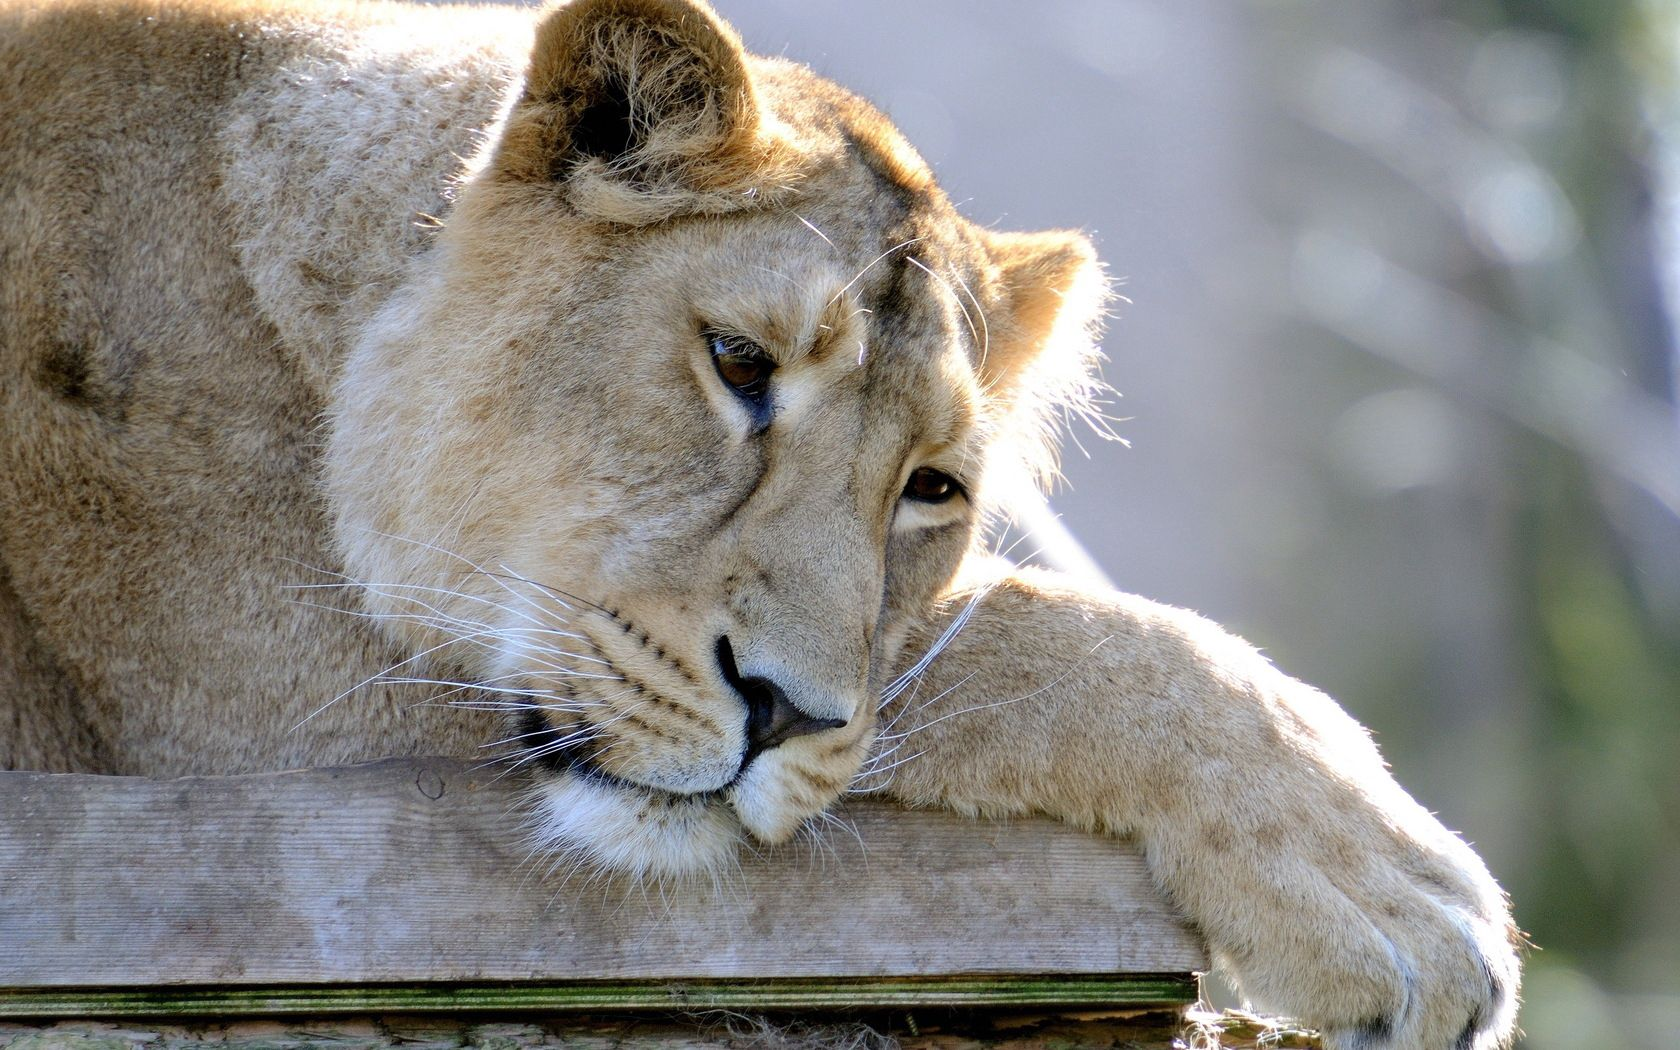 135161 download wallpaper Animals, Lion, Lioness, Sleep, Dream, Sadness, Sorrow, To Lie Down, Lie, Paw, Predator screensavers and pictures for free